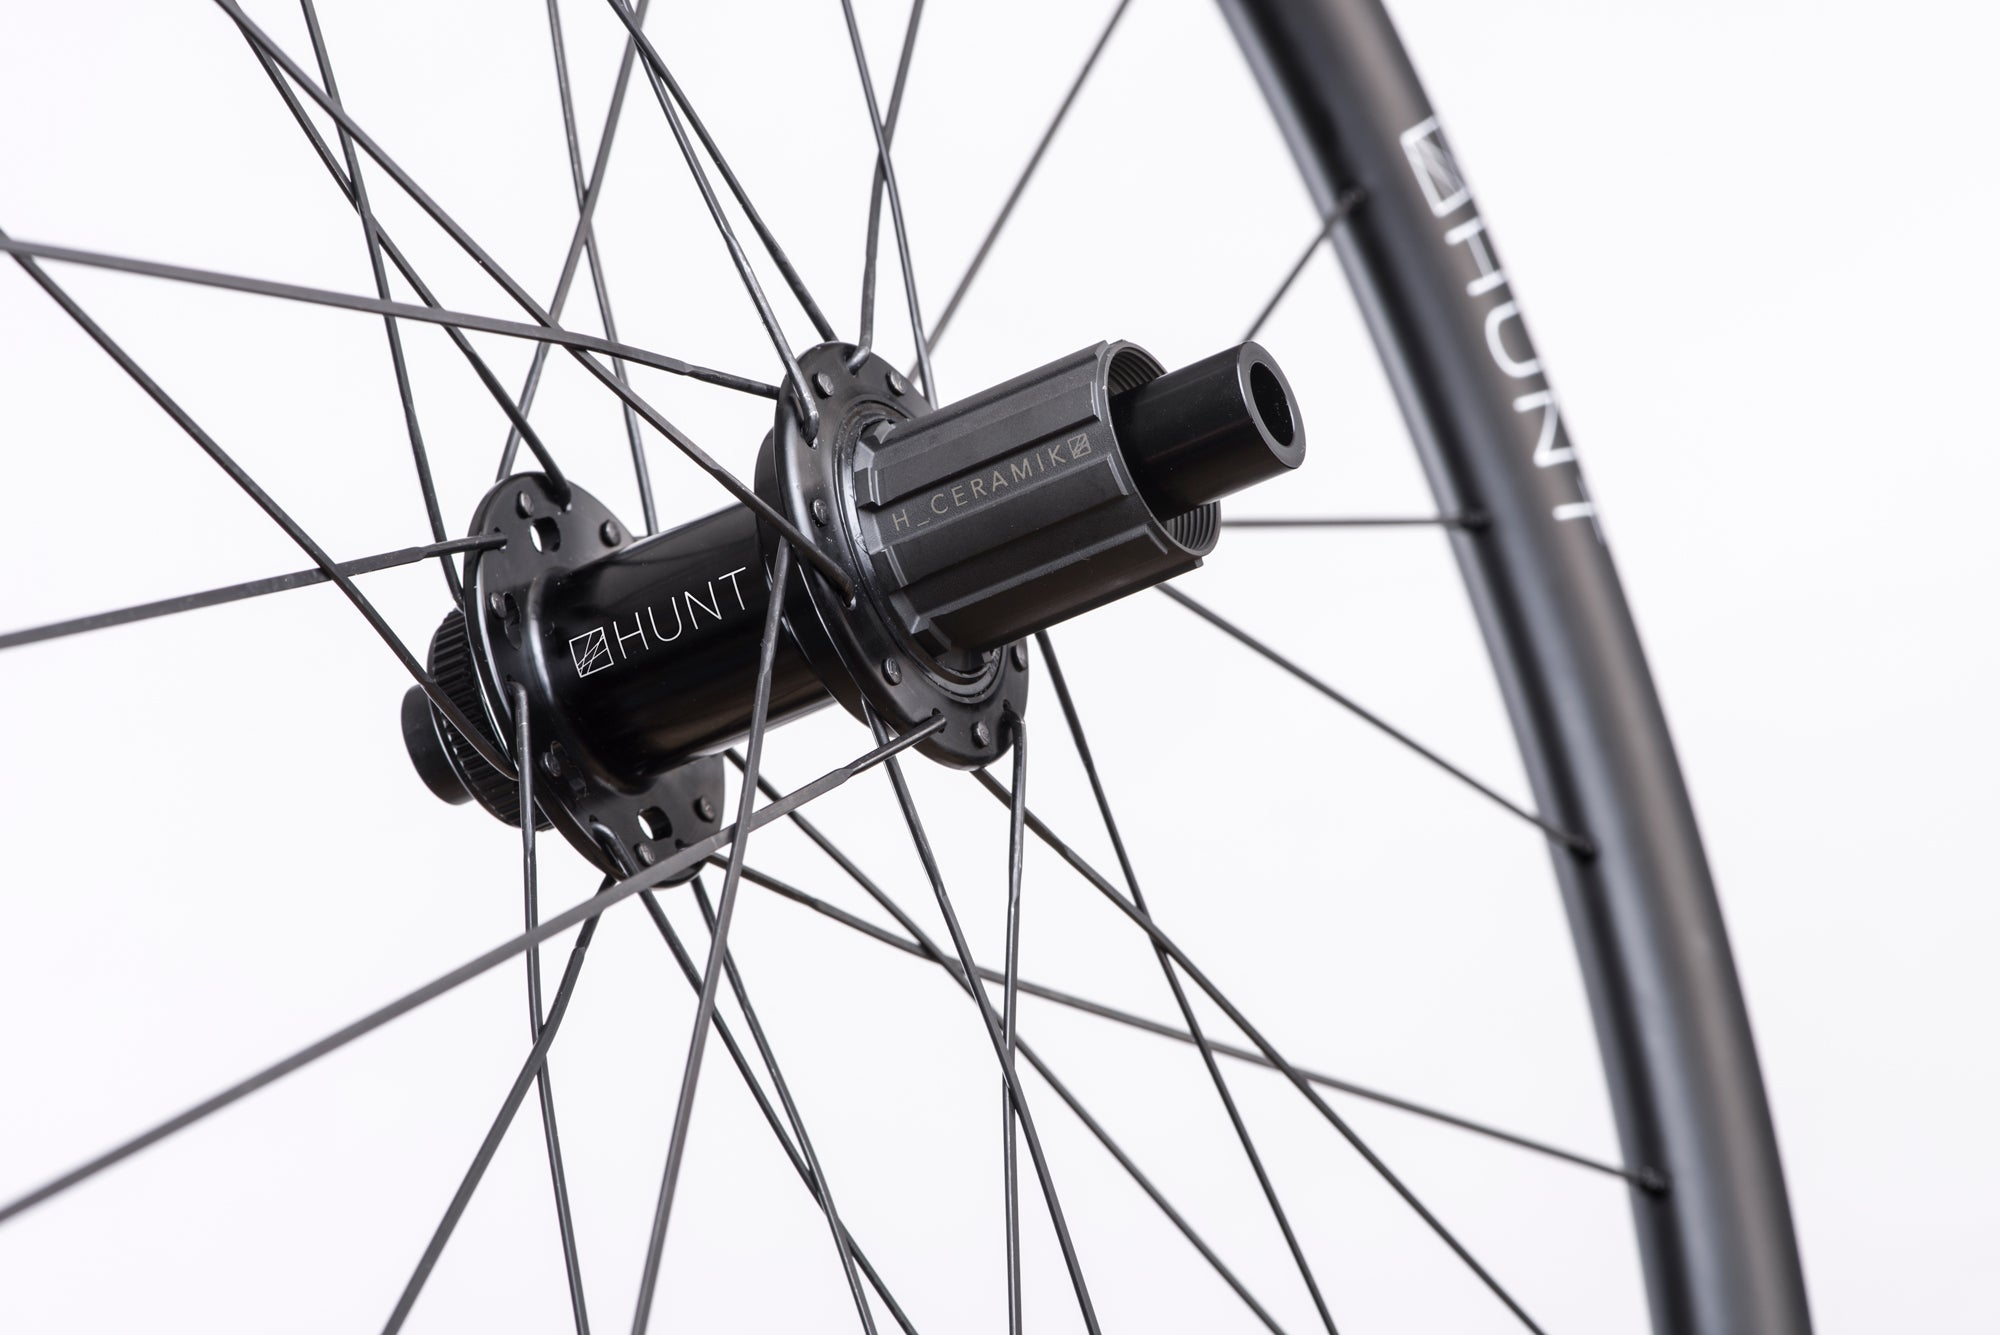 <h1>Shimano/Sram Replacement Freehub</h1><ul><li>Hunt 30 Carbon Gravel Disc Wheelset</li><li>Hunt 30 Carbon Dynamo Disc Wheelset</li><li>Hunt XC Wide MTB Wheelset</li></ul>